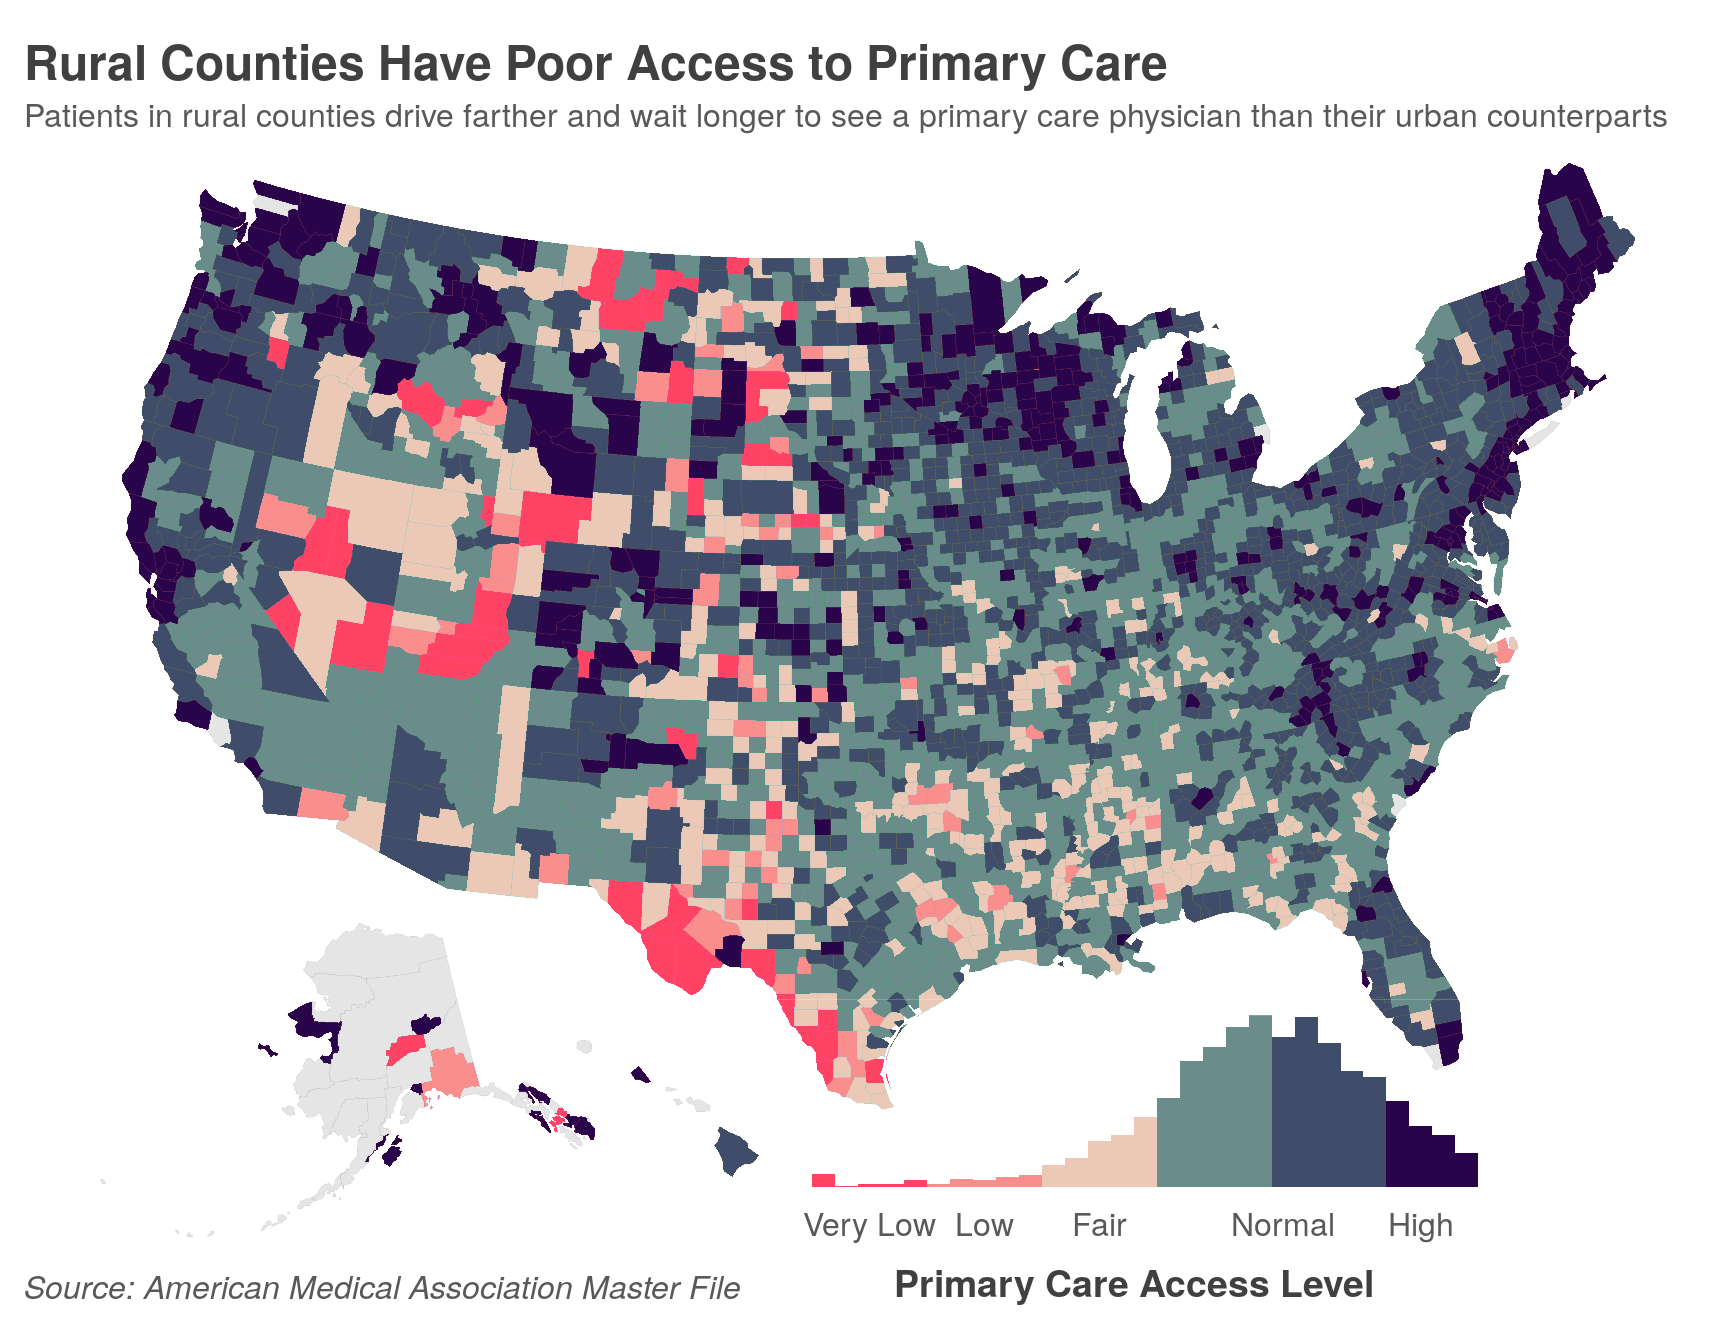 Rural counties have poor access to primary care